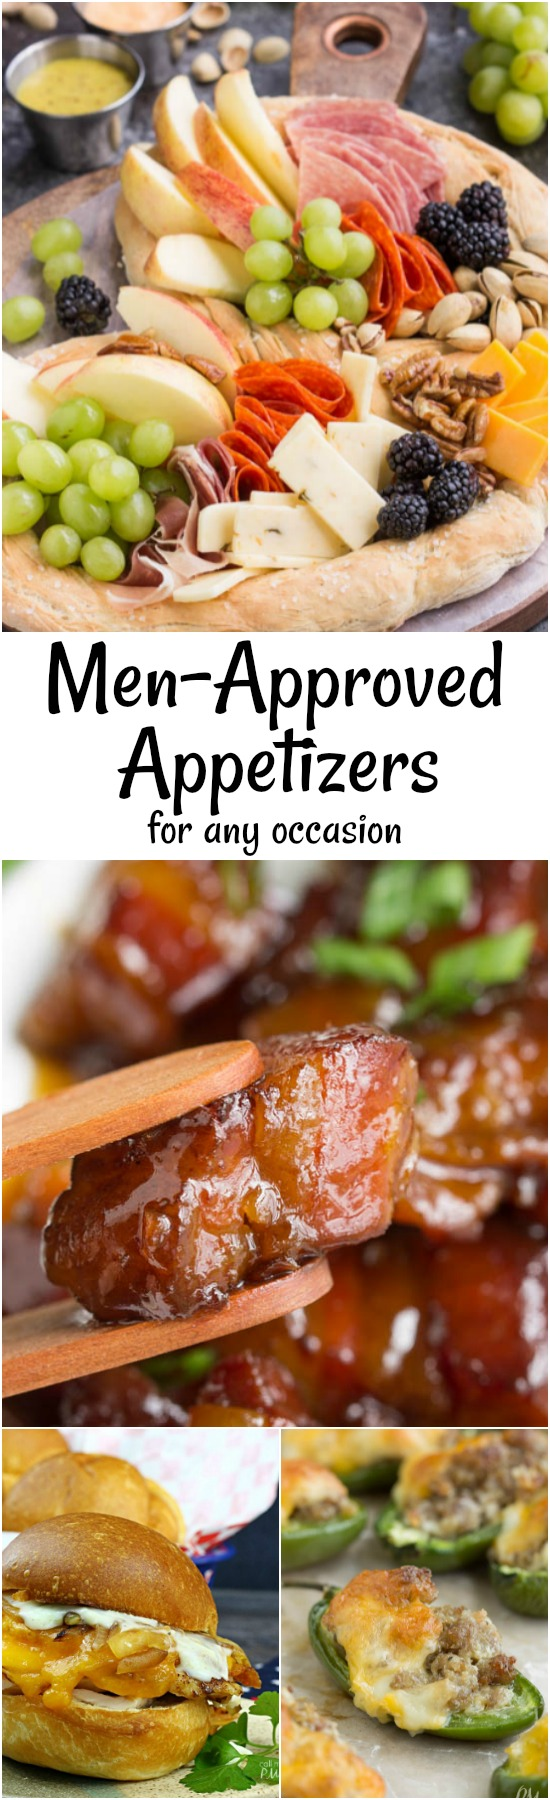 11 Hearty Men Approved Appetizers